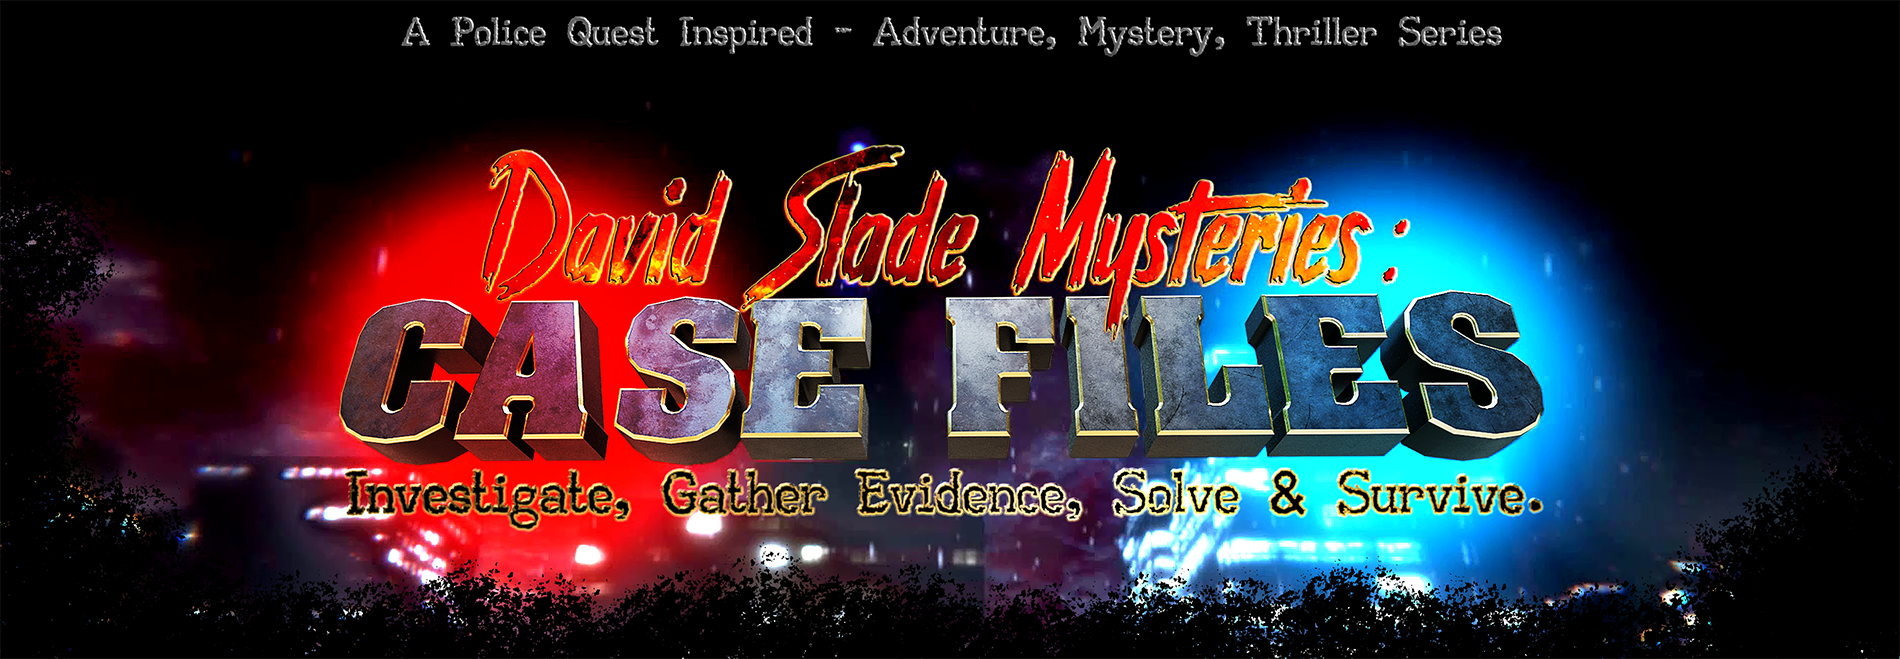 David Slade Mysteries: Case Files